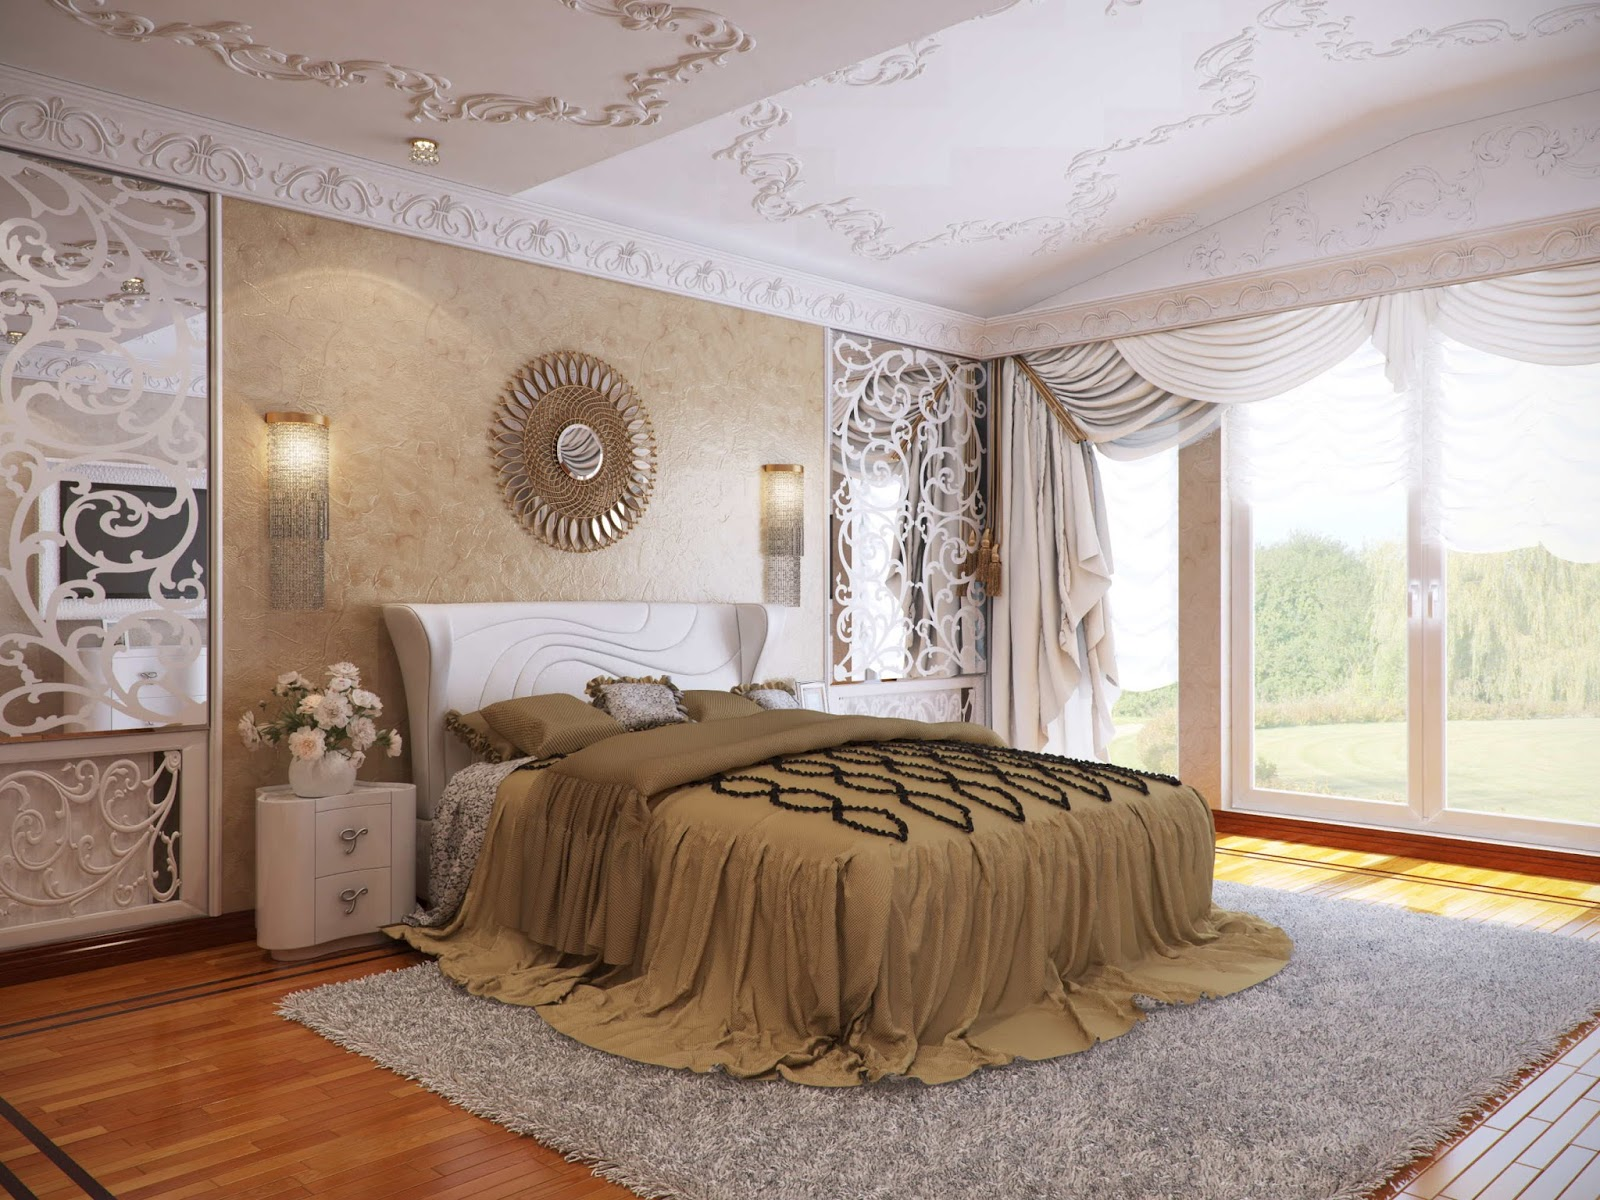 . 11 Attractive bedroom design ideas that will make your home awesome